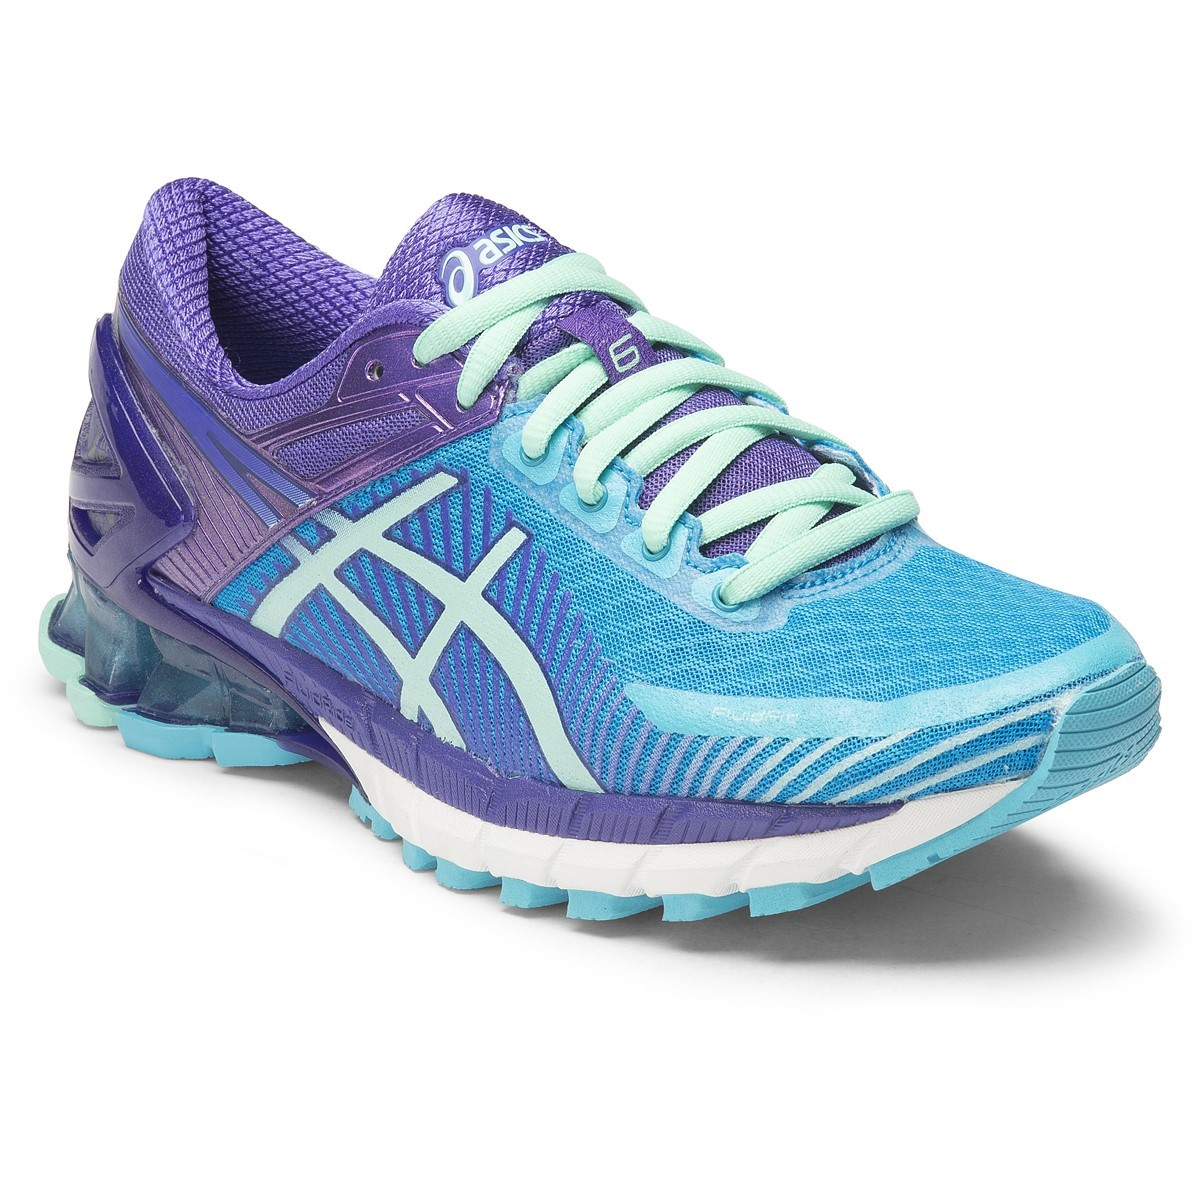 asics kinsei 6 womens running shoes turquoise silver purple online sportitude. Black Bedroom Furniture Sets. Home Design Ideas